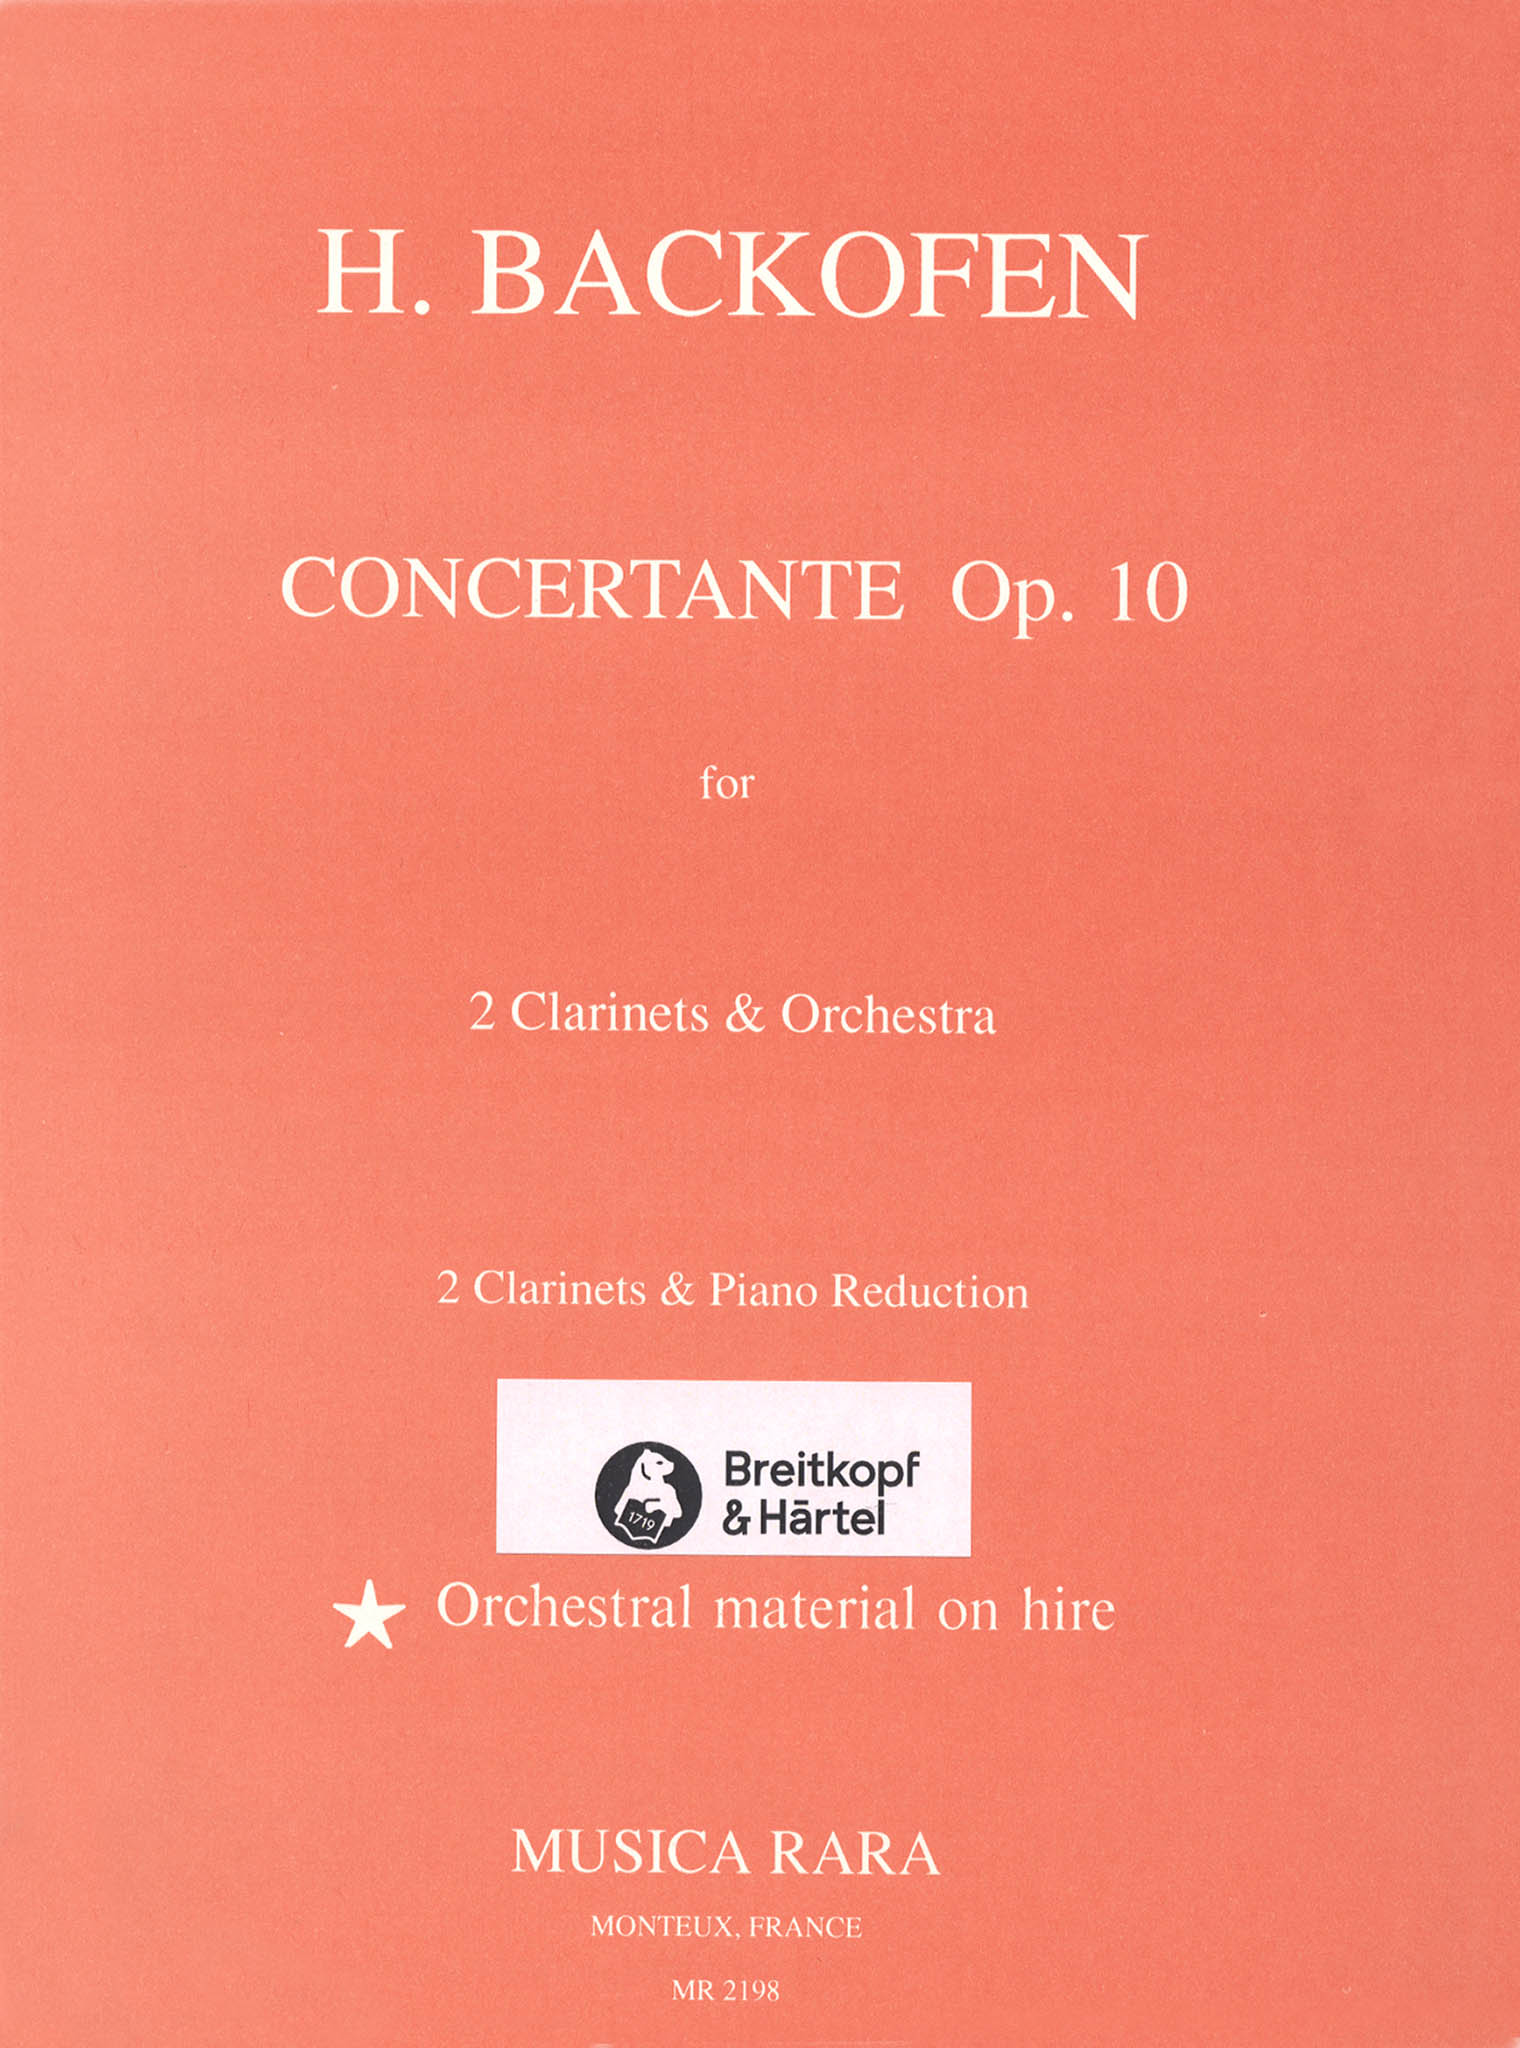 Backofen Sinfonia Concertante, Op. 10 Cover